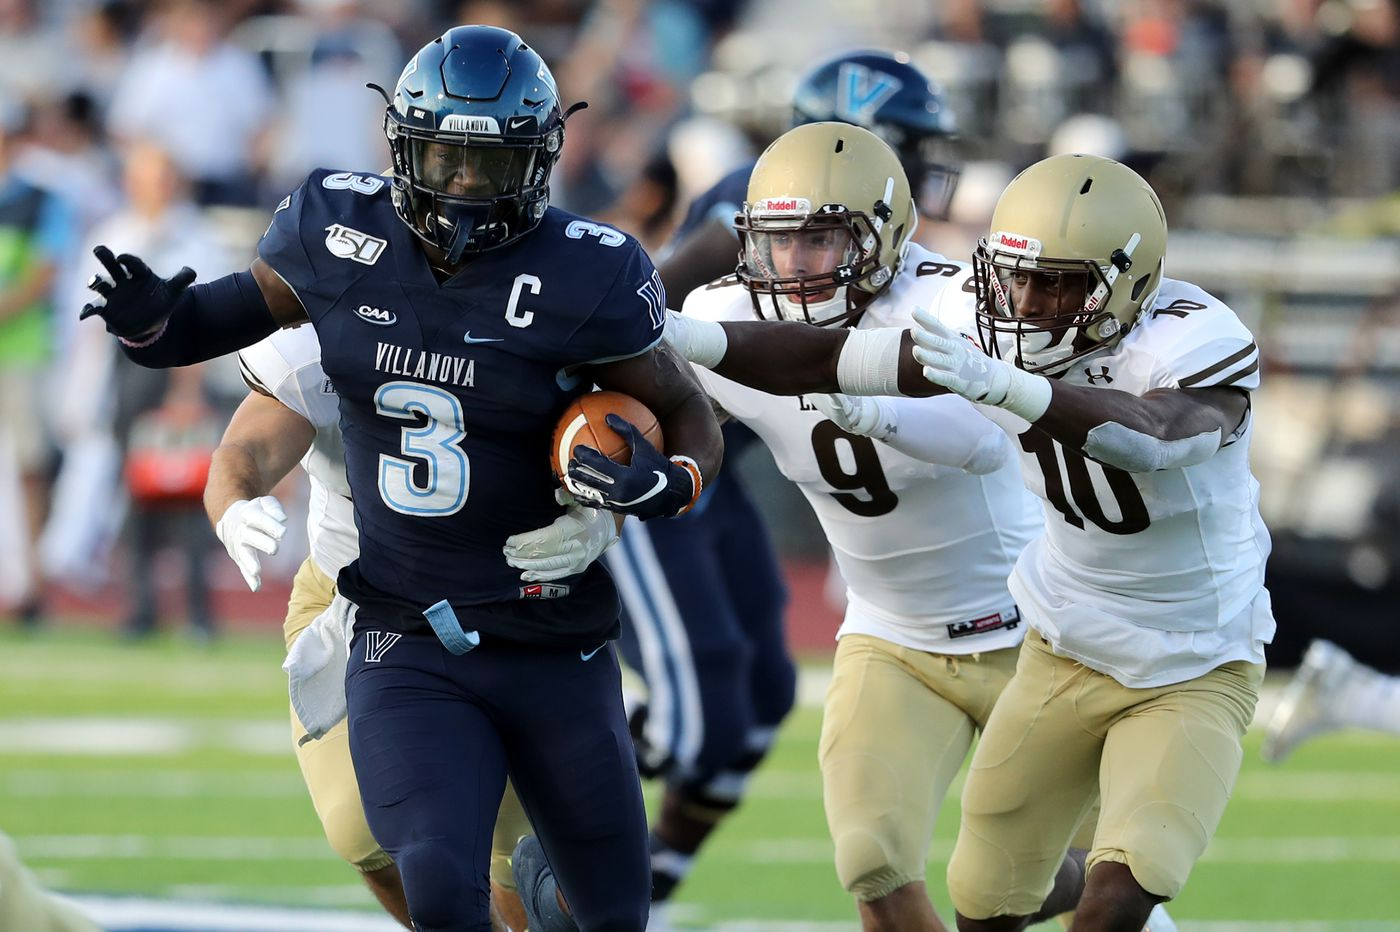 Villanova loses running back Justin Covington for the season with torn ACL